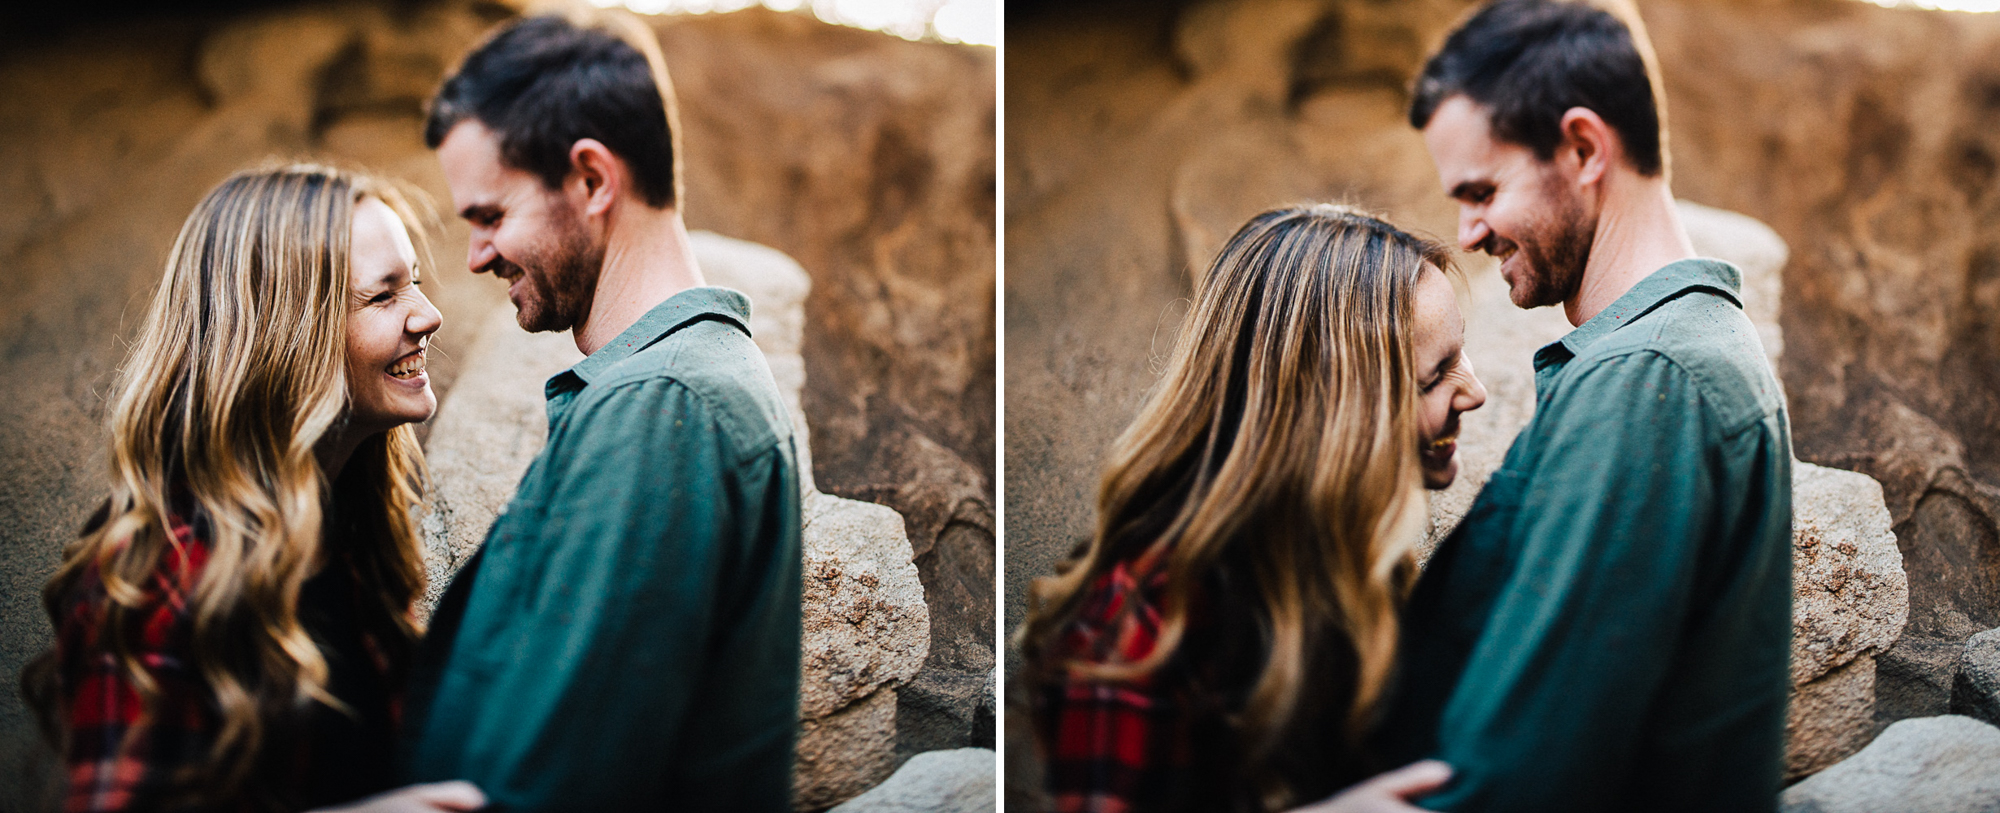 ©Isaiah & Taylor Photography - Destination Wedding Photographers - Joshua Tree, California Adventure Engagement-042.jpg